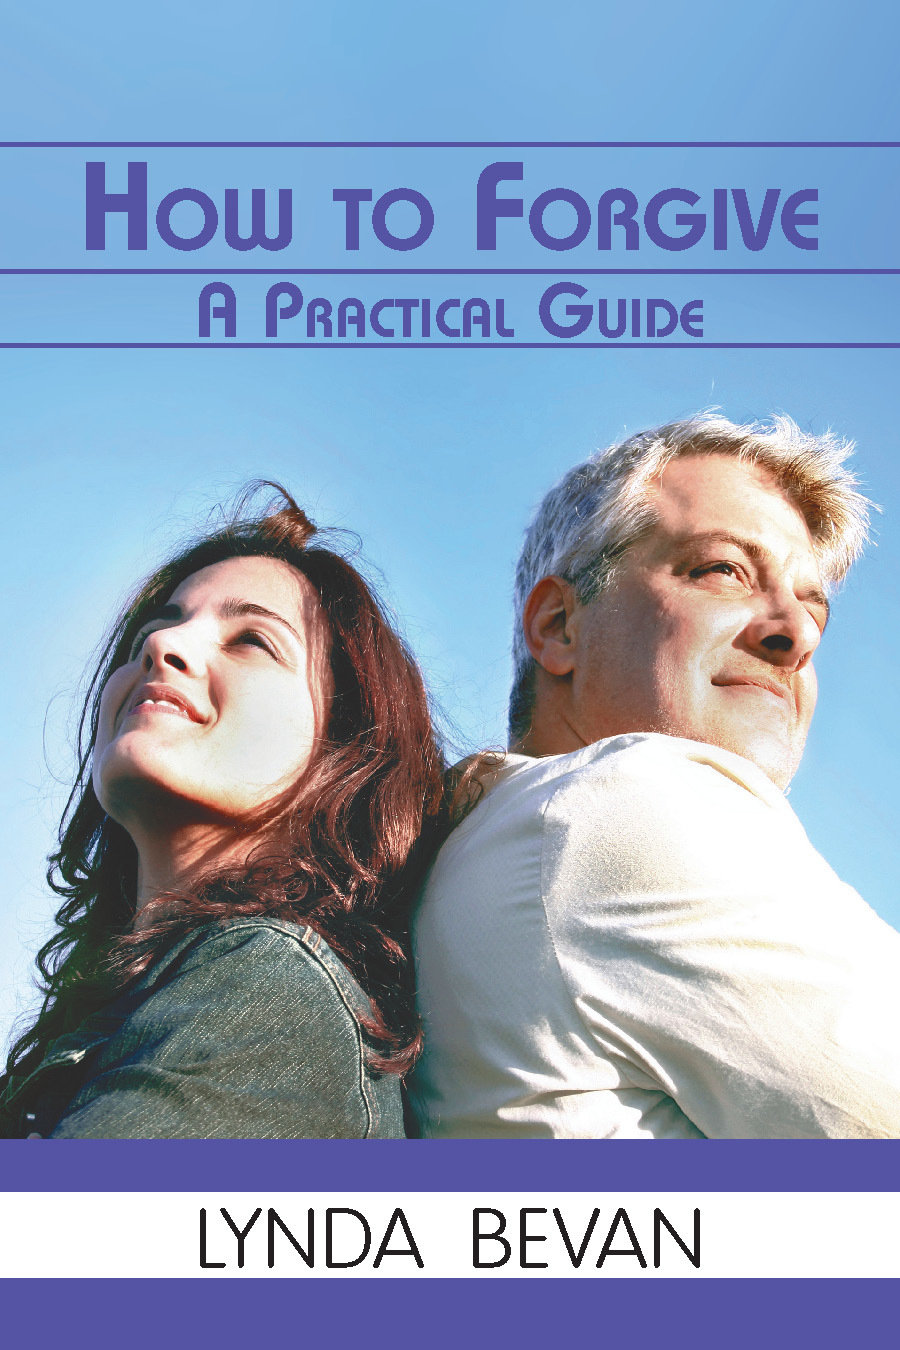 How to Forgive: A Practical Guide 978-1-61599-030-6